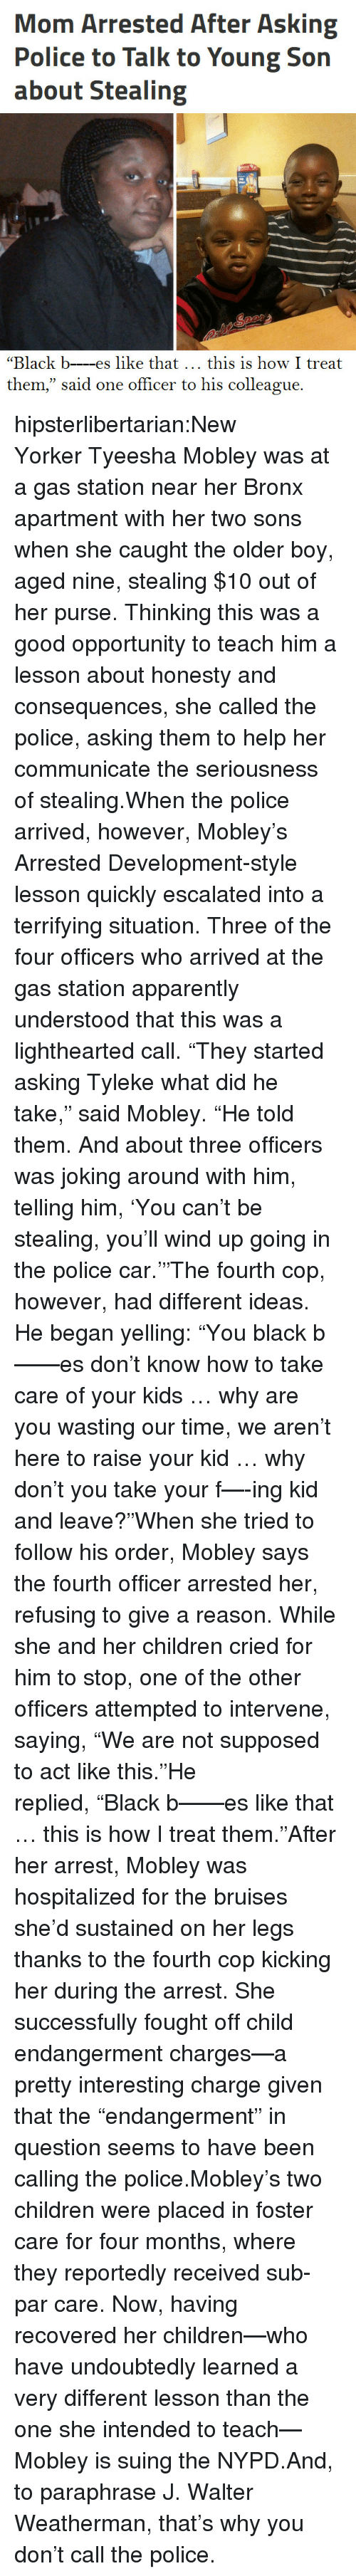 """Apparently, Children, and Hulu: Mom Arrested After Asking  Police to Talk to Young Son  about Stealing  """"Black b---es like that this is how I treat  them,"""" said one officer to his colleague. hipsterlibertarian:New YorkerTyeesha Mobley was at a gas station near her Bronx apartment with her two sons when she caught the older boy, aged nine, stealing $10 out of her purse. Thinking this was a good opportunity to teach him a lesson about honesty and consequences, she called the police, asking them to help her communicate the seriousness of stealing.When the police arrived, however, Mobley's Arrested Development-style lesson quickly escalated into a terrifying situation. Three of the four officers who arrived at the gas station apparently understood that this was a lighthearted call.""""They started asking Tyleke what did he take,"""" said Mobley. """"He told them. And about three officers was joking around with him, telling him, 'You can't be stealing, you'll wind up going in the police car.'""""The fourth cop, however, had different ideas. He began yelling:""""You black b——es don't know how to take care of your kids … why are you wasting our time, we aren't here to raise your kid … why don't you take your f—-ing kid and leave?""""When she tried to follow his order, Mobley says the fourth officer arrested her, refusing to give a reason. While she and her children cried for him to stop, one of the other officers attempted to intervene, saying,""""We are not supposed to act like this.""""He replied,""""Black b——es like that … this is how I treat them.""""After her arrest, Mobley was hospitalized for the bruises she'd sustained on her legs thanks to the fourth cop kicking her during the arrest. She successfully fought off child endangerment charges—a pretty interesting charge given that the""""endangerment"""" in question seems to have been calling the police.Mobley's two children were placed in foster care for four months, where they reportedly received sub-par care. Now, having recovered her children—who ha"""